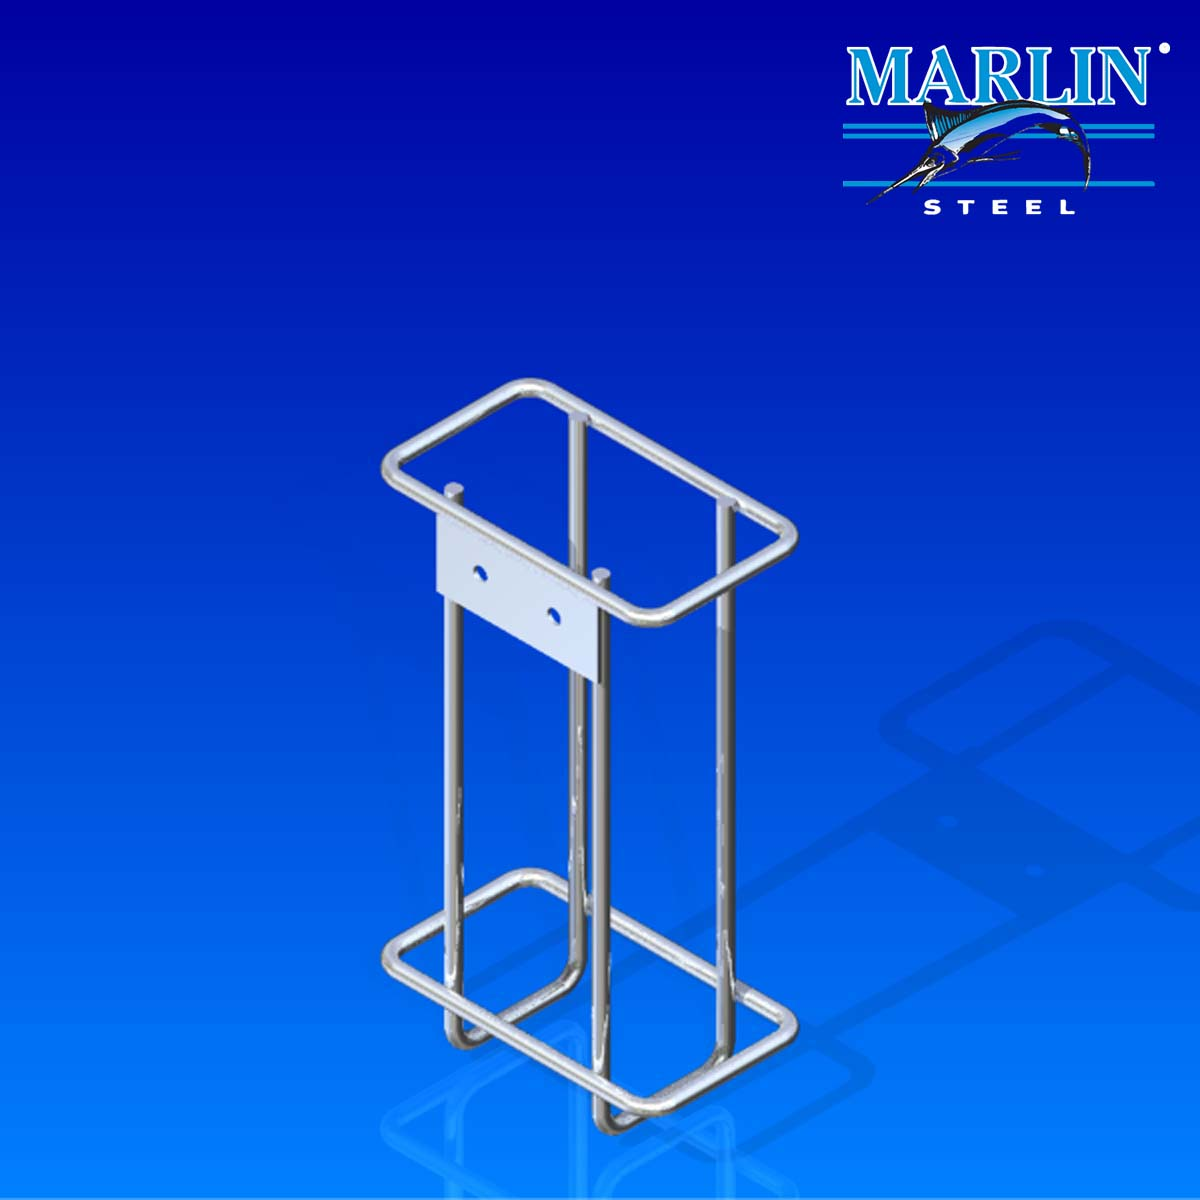 Marlin Steel Wire Basket 851001